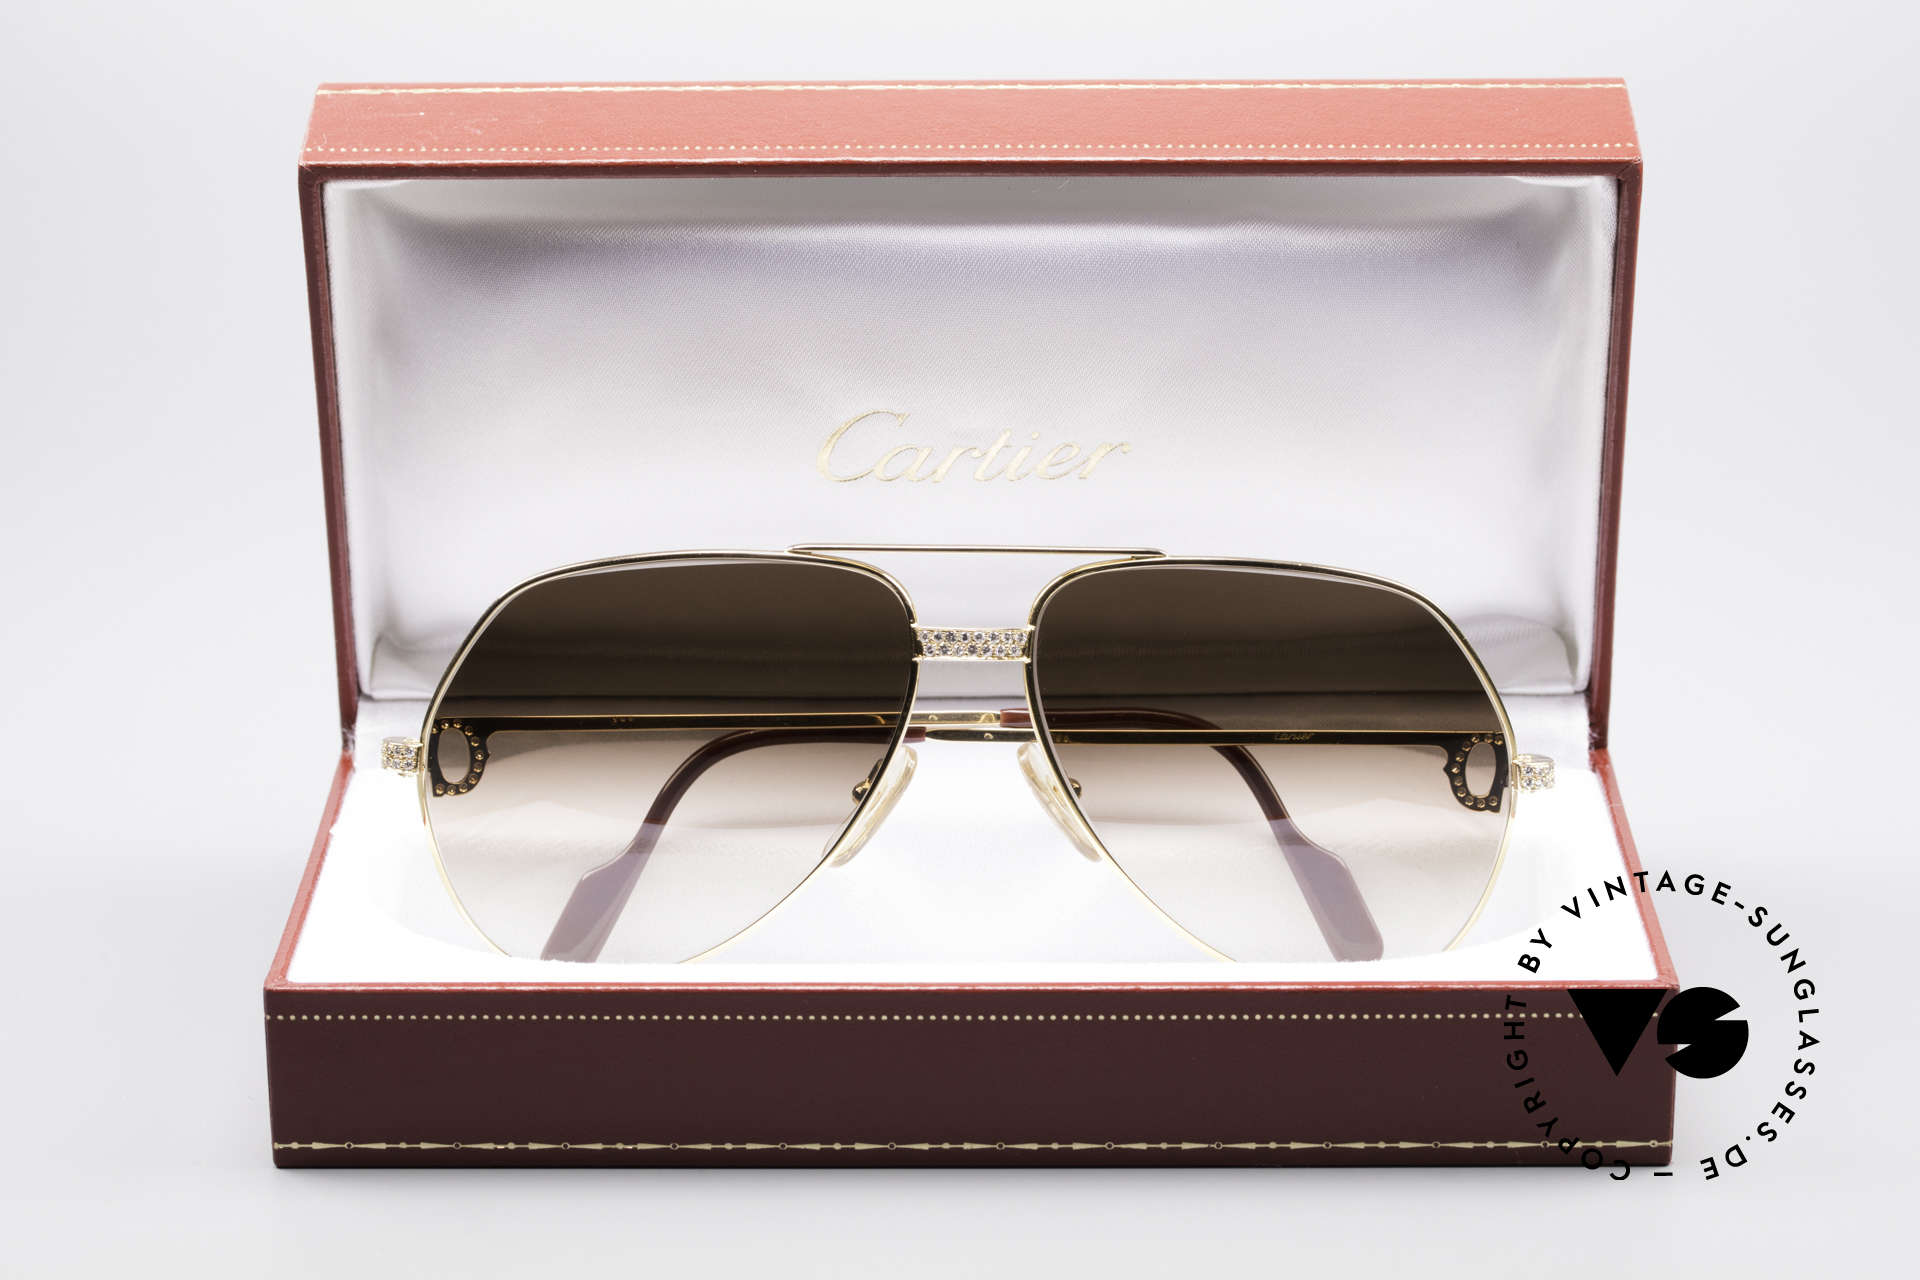 Cartier Grand Pavage Diamond Glasses, Size: large, Made for Men